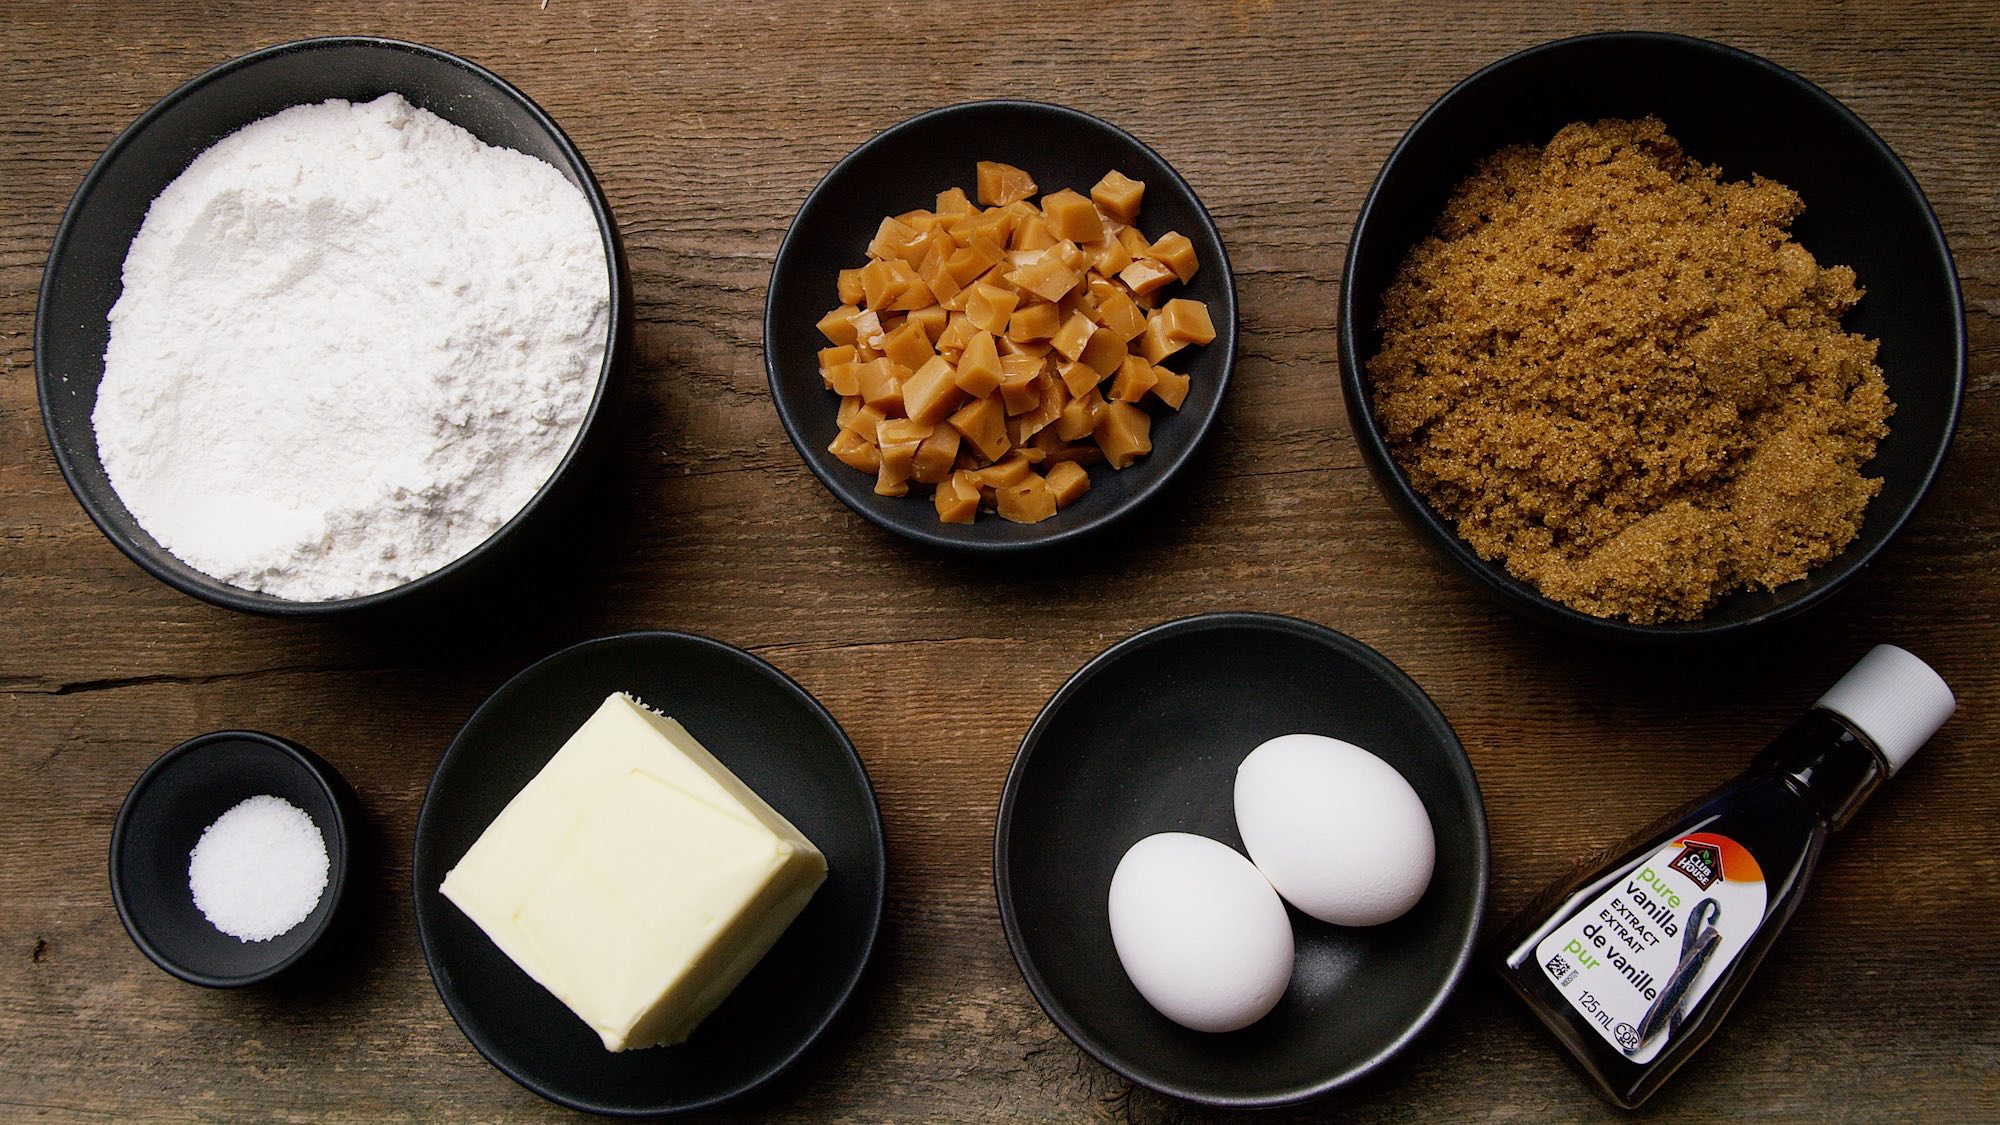 Simple ingredients, and if you can't get Mackintosh's toffee bits, you could use Skor or any other toffee.